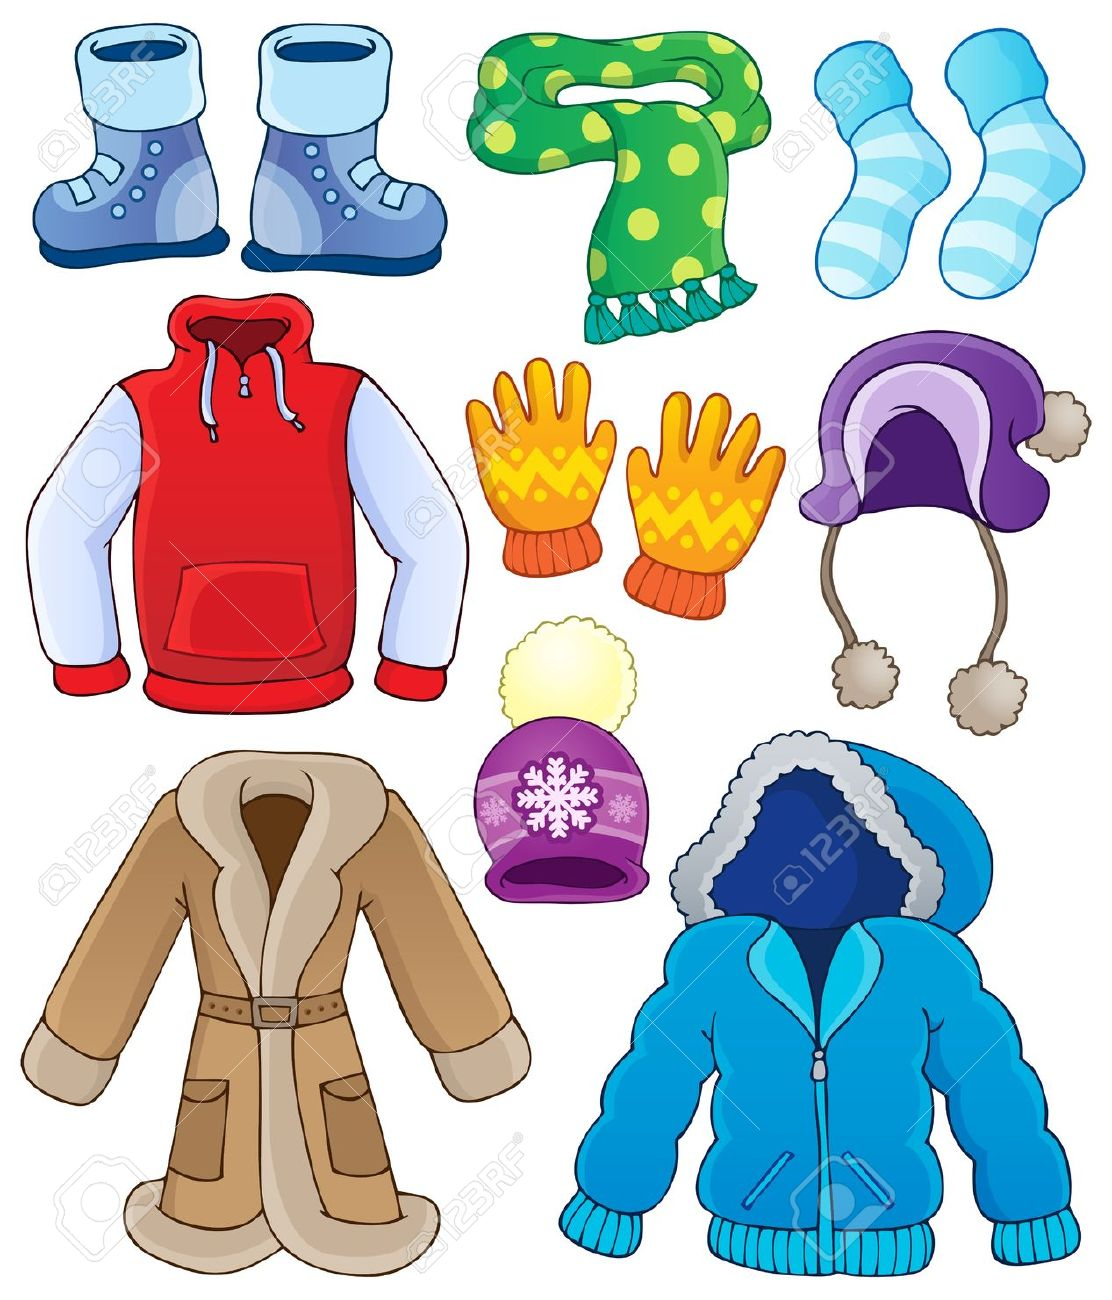 http://previews.123rf.com/images/clairev/clairev1310/clairev131000050/22502411-Winter-clothes-collection--Stock-Vector-cartoon.jpg